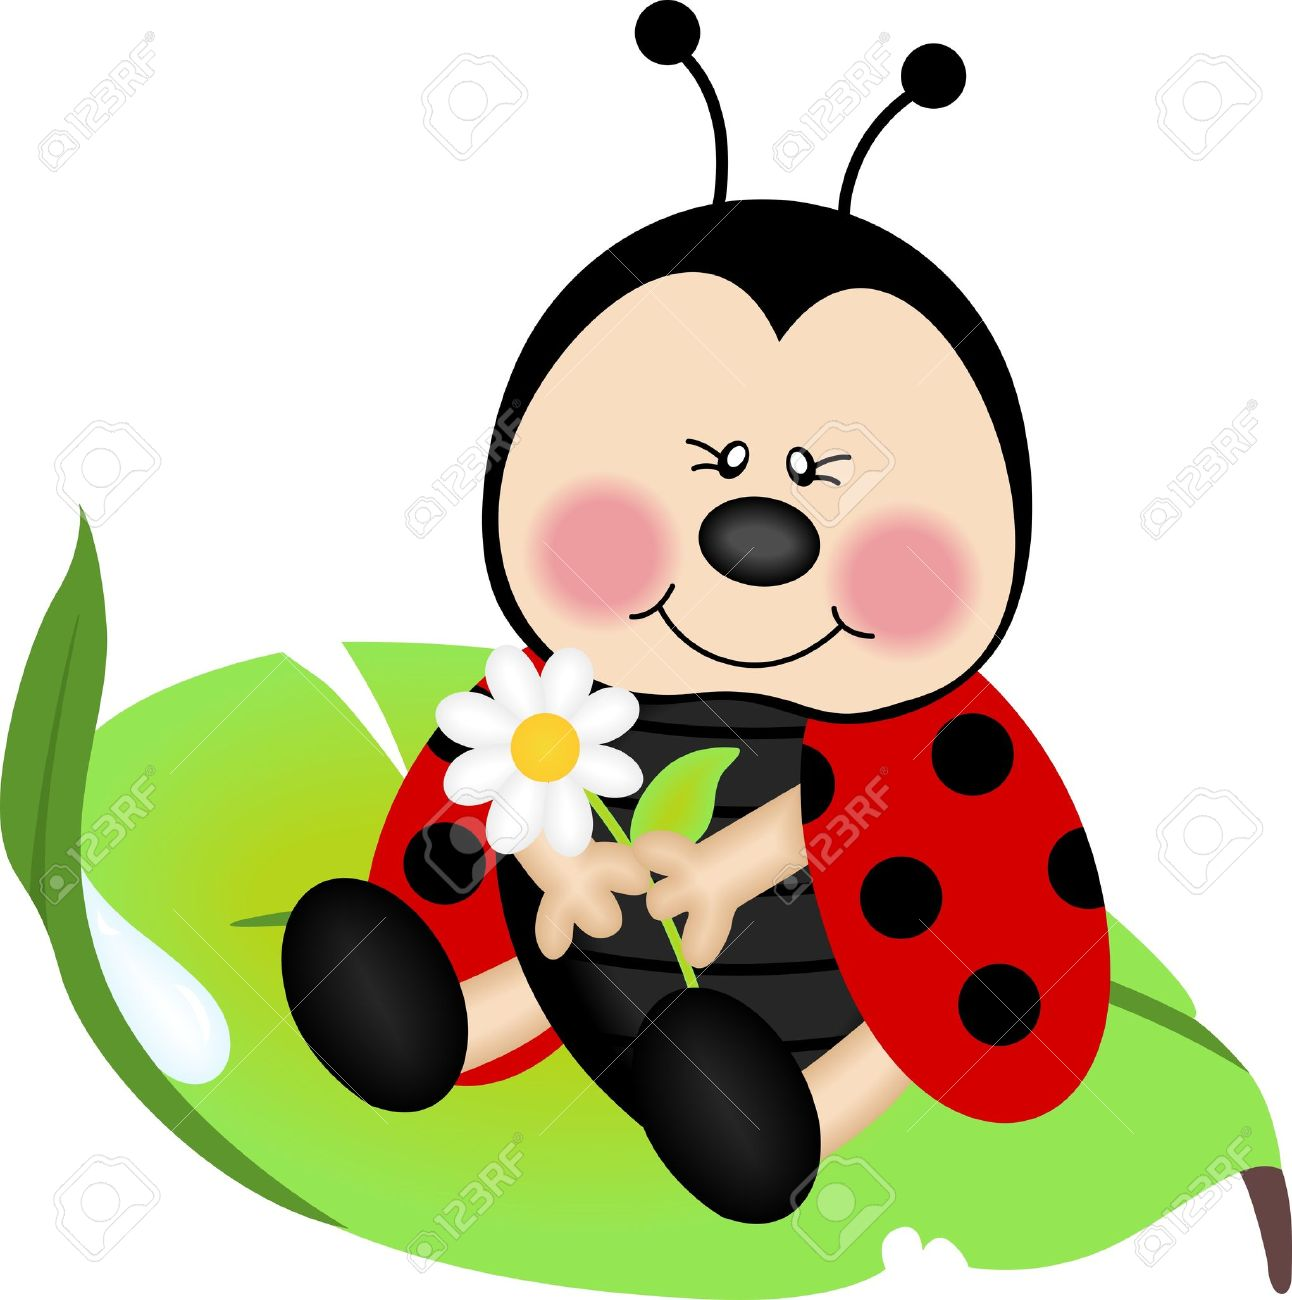 Ladybug Cartoon Stock Photos Images. Royalty Free Ladybug Cartoon.